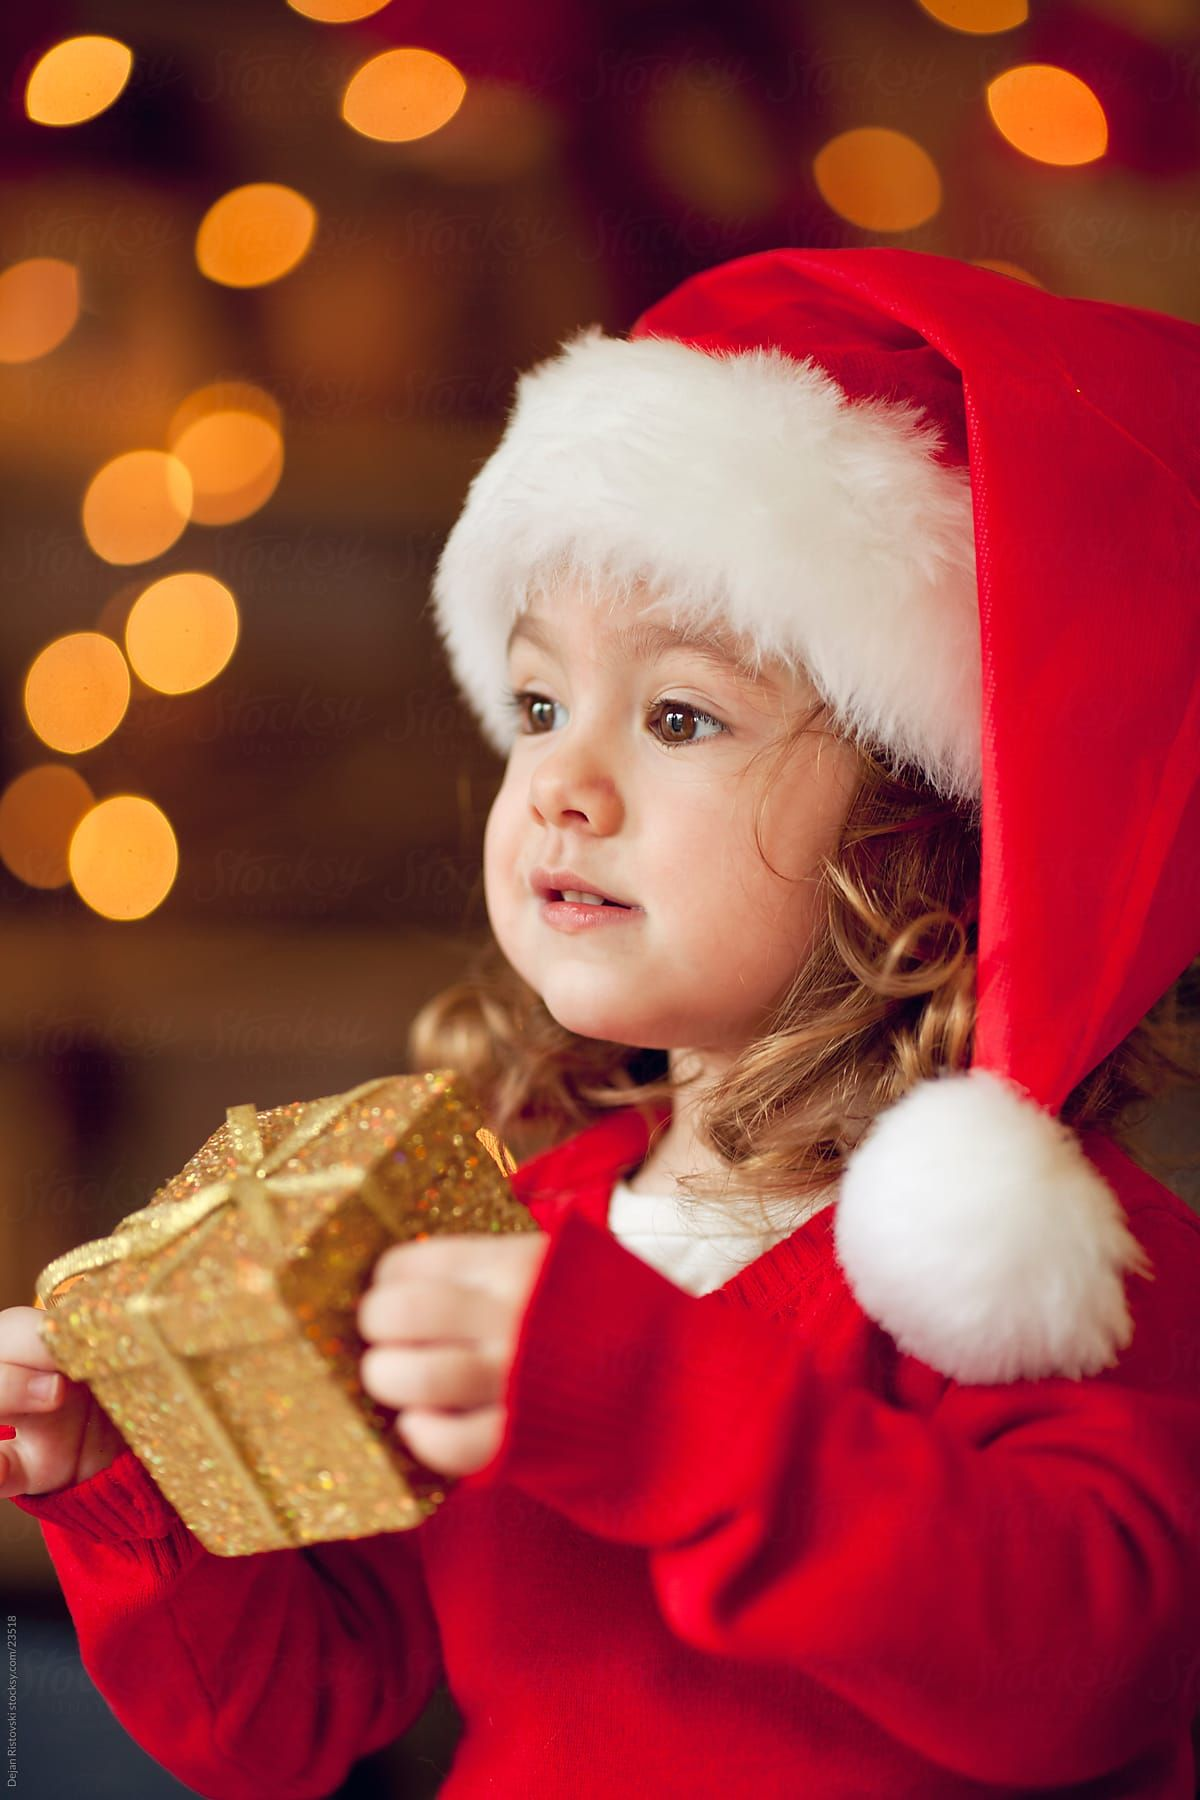 Waiting For Santa Claus Download this highresolution stock photo by